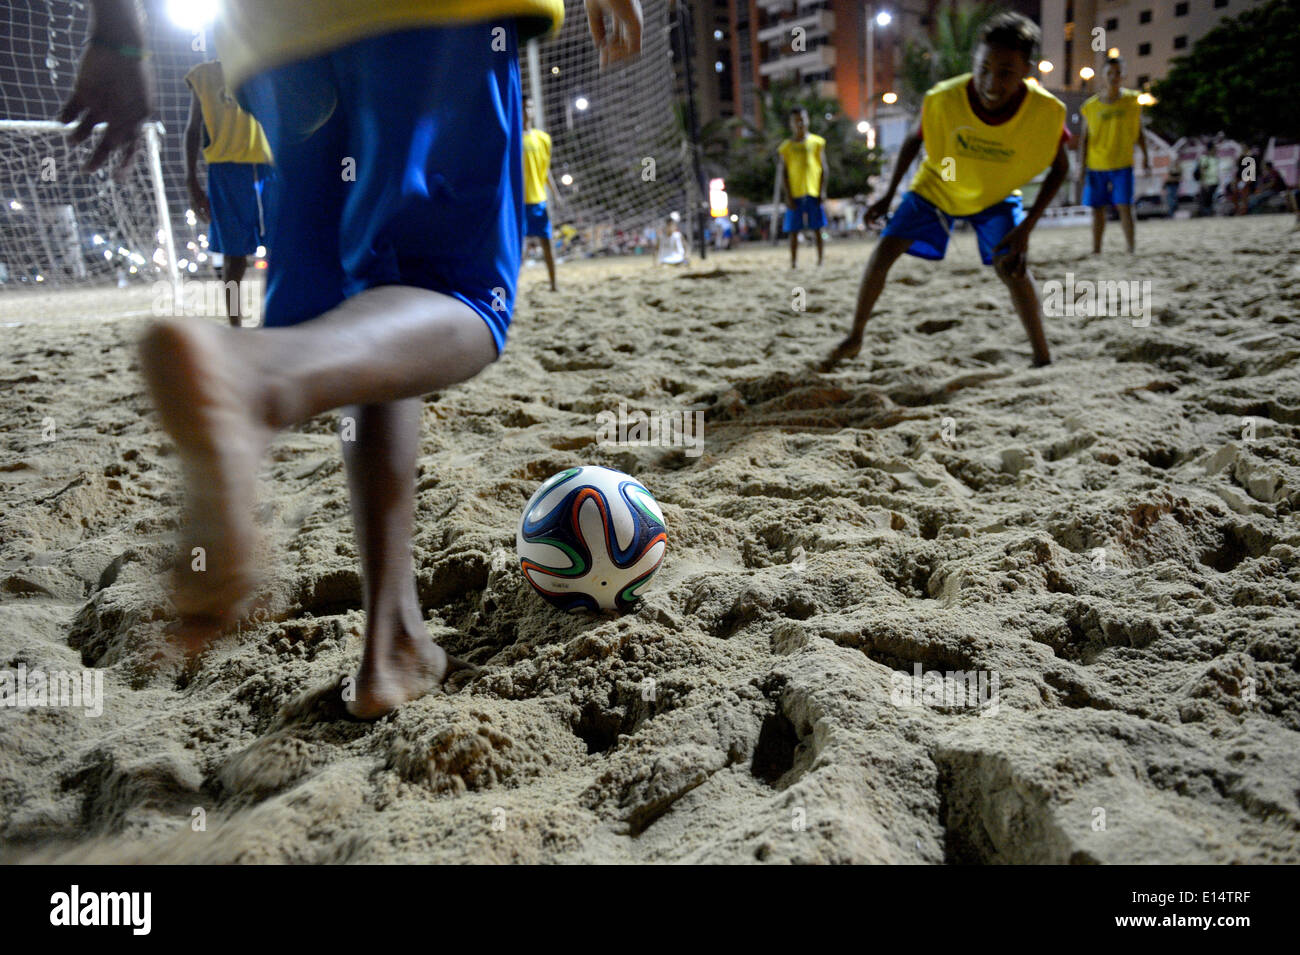 Young people playing football in the evening at the beach, Praia de Iracema, Fortaleza, Ceará, Brazil Stock Photo